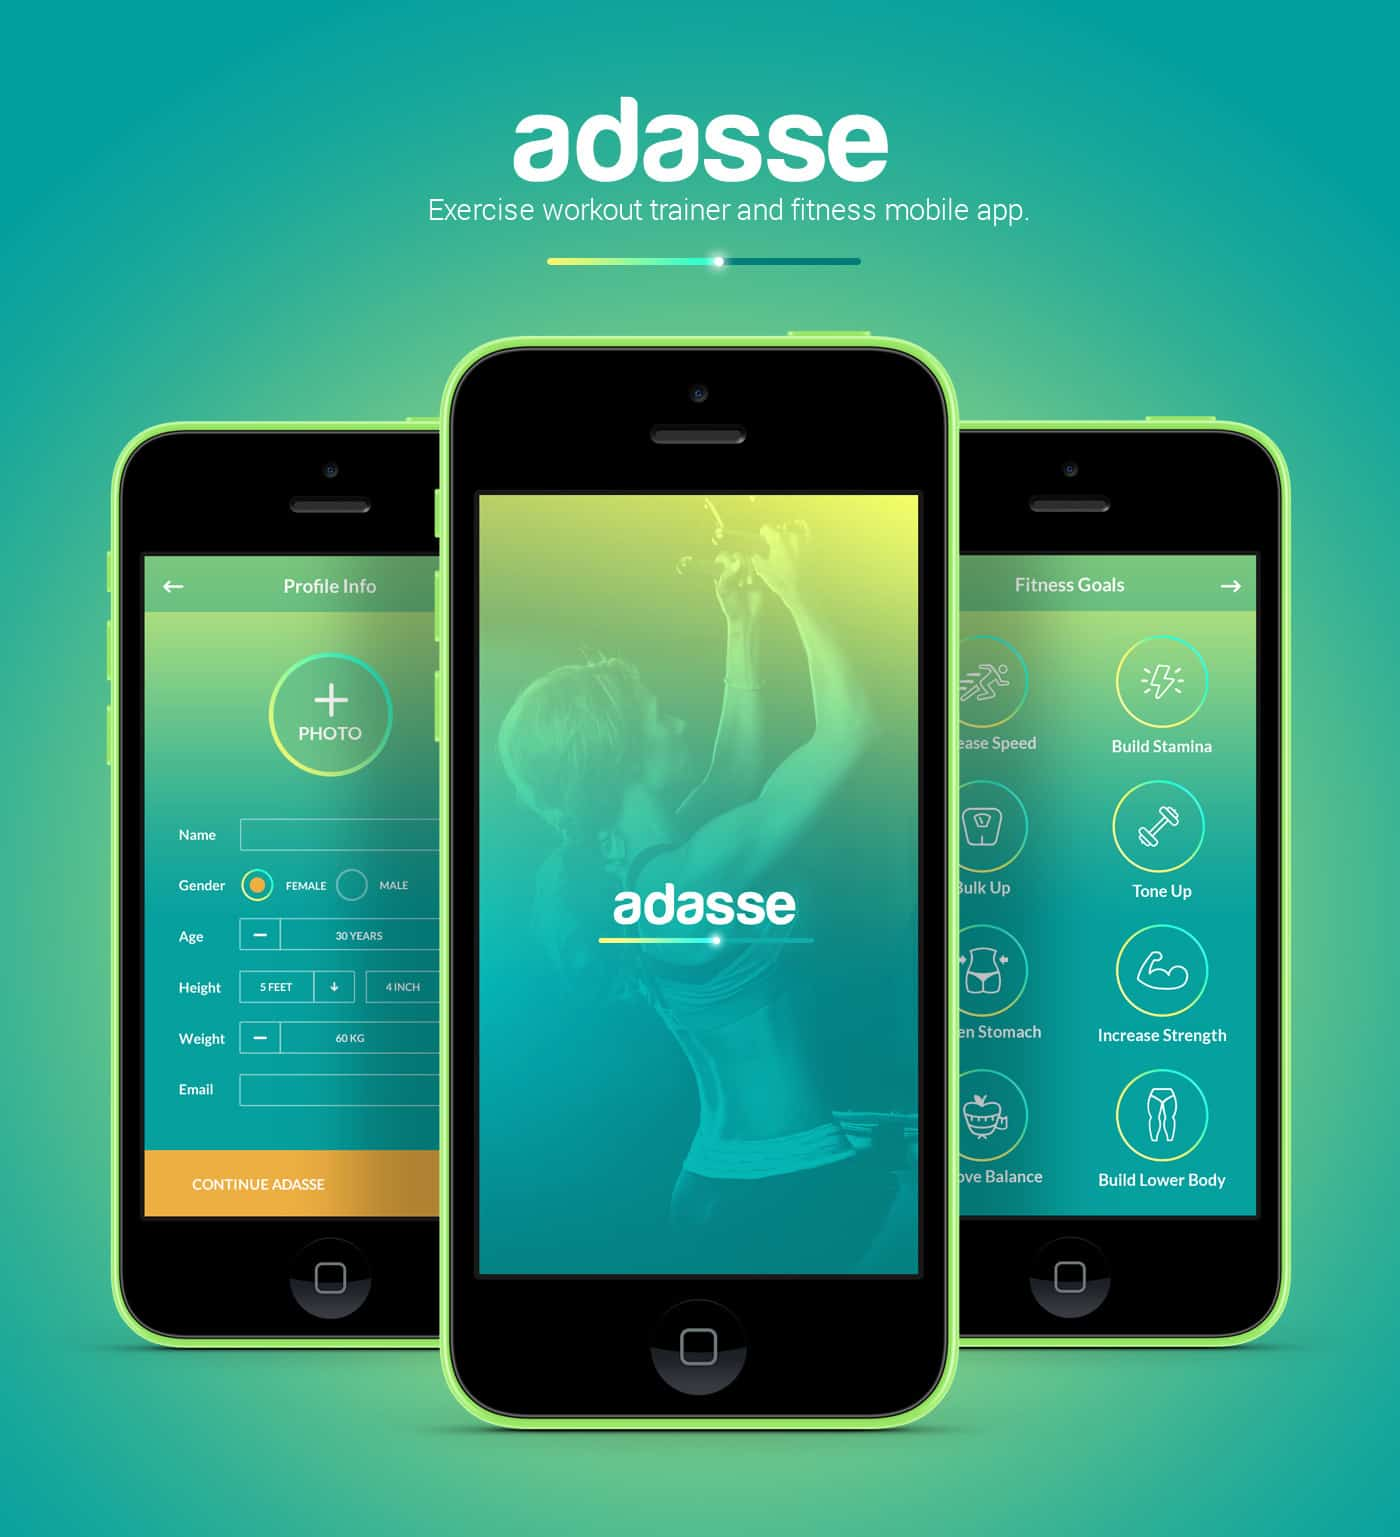 Adasse Gym Workout Mobile App By Naresh Kumar